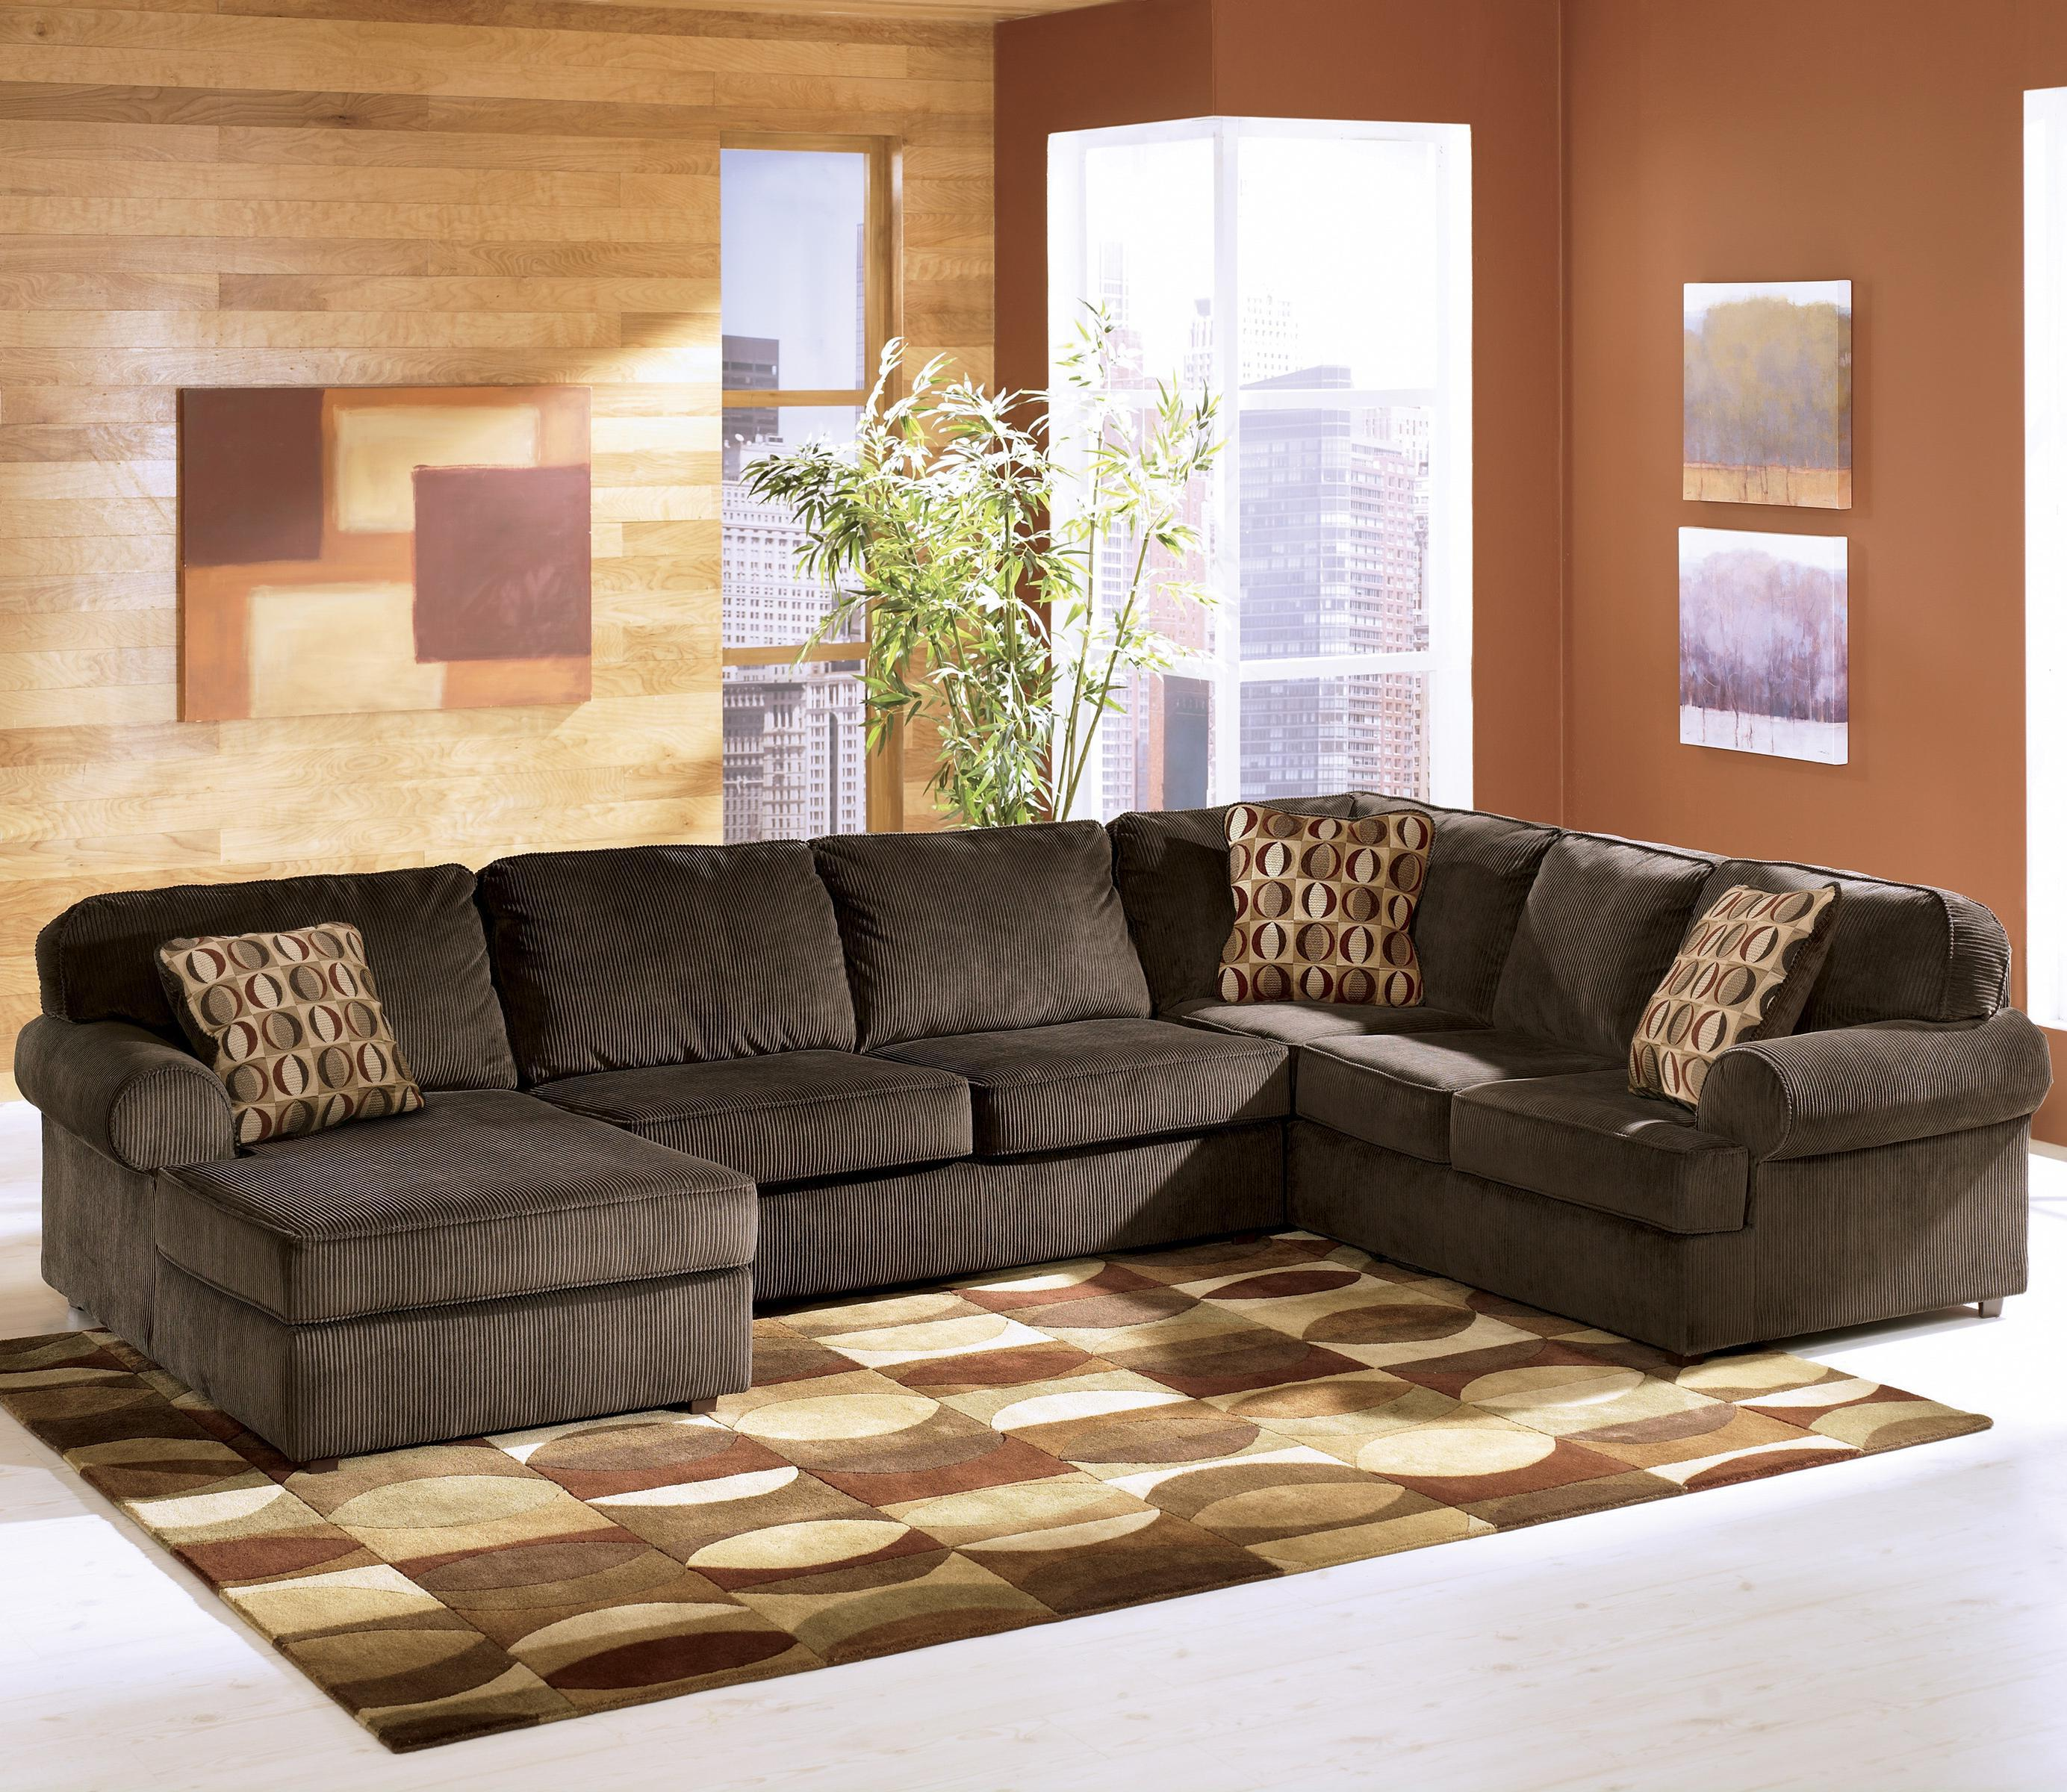 Vista - Chocolate 3-Piece Sectional with Left Chaise by Ashley Furniture at Lapeer Furniture & Mattress Center